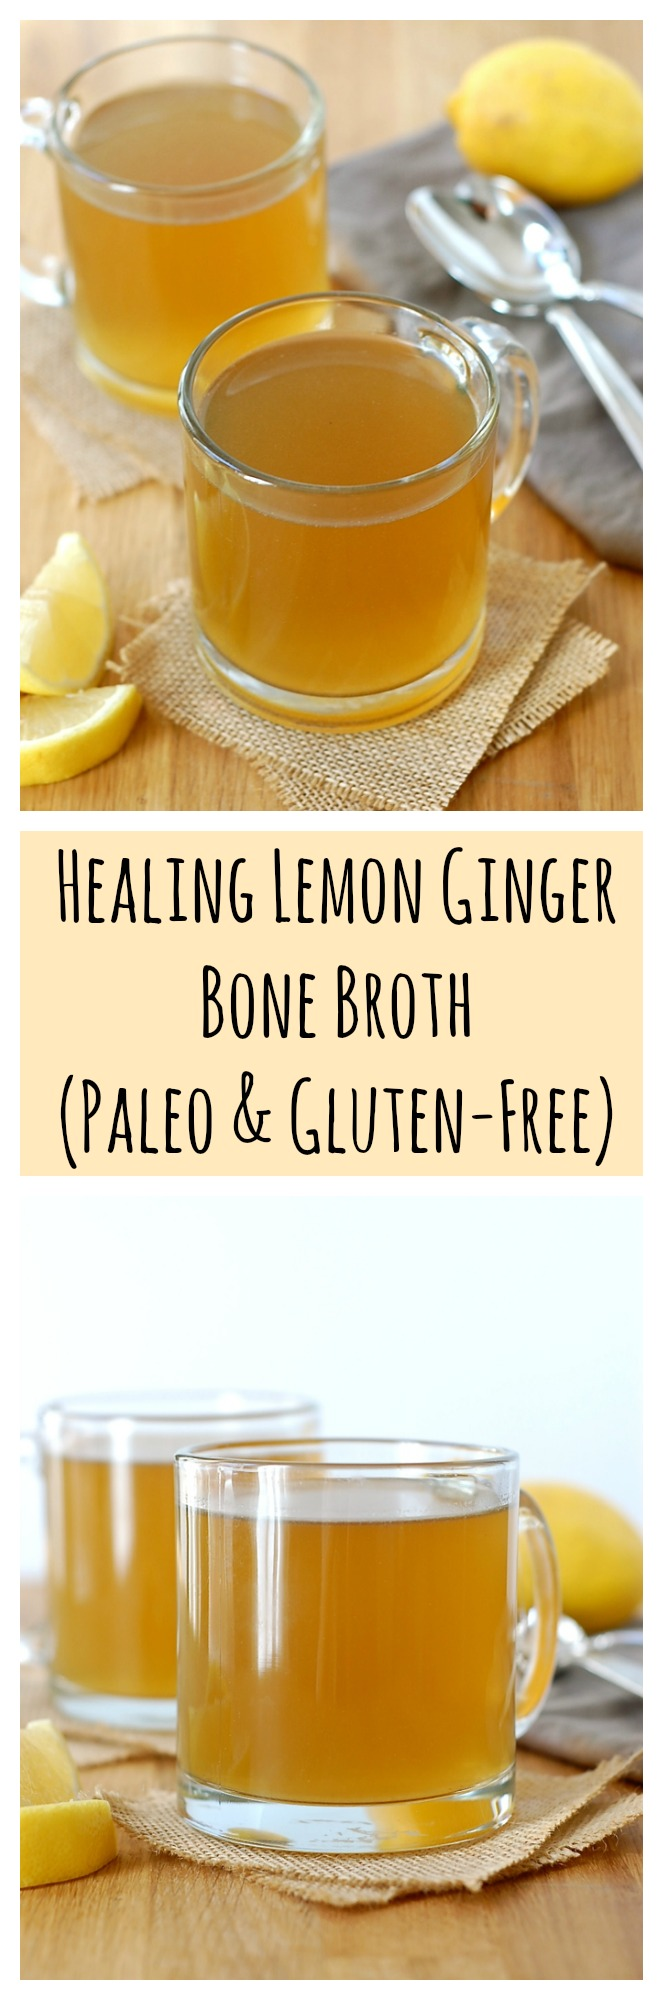 Healing Lemon Ginger Bone Broth (Paleo & Gluten-Free)